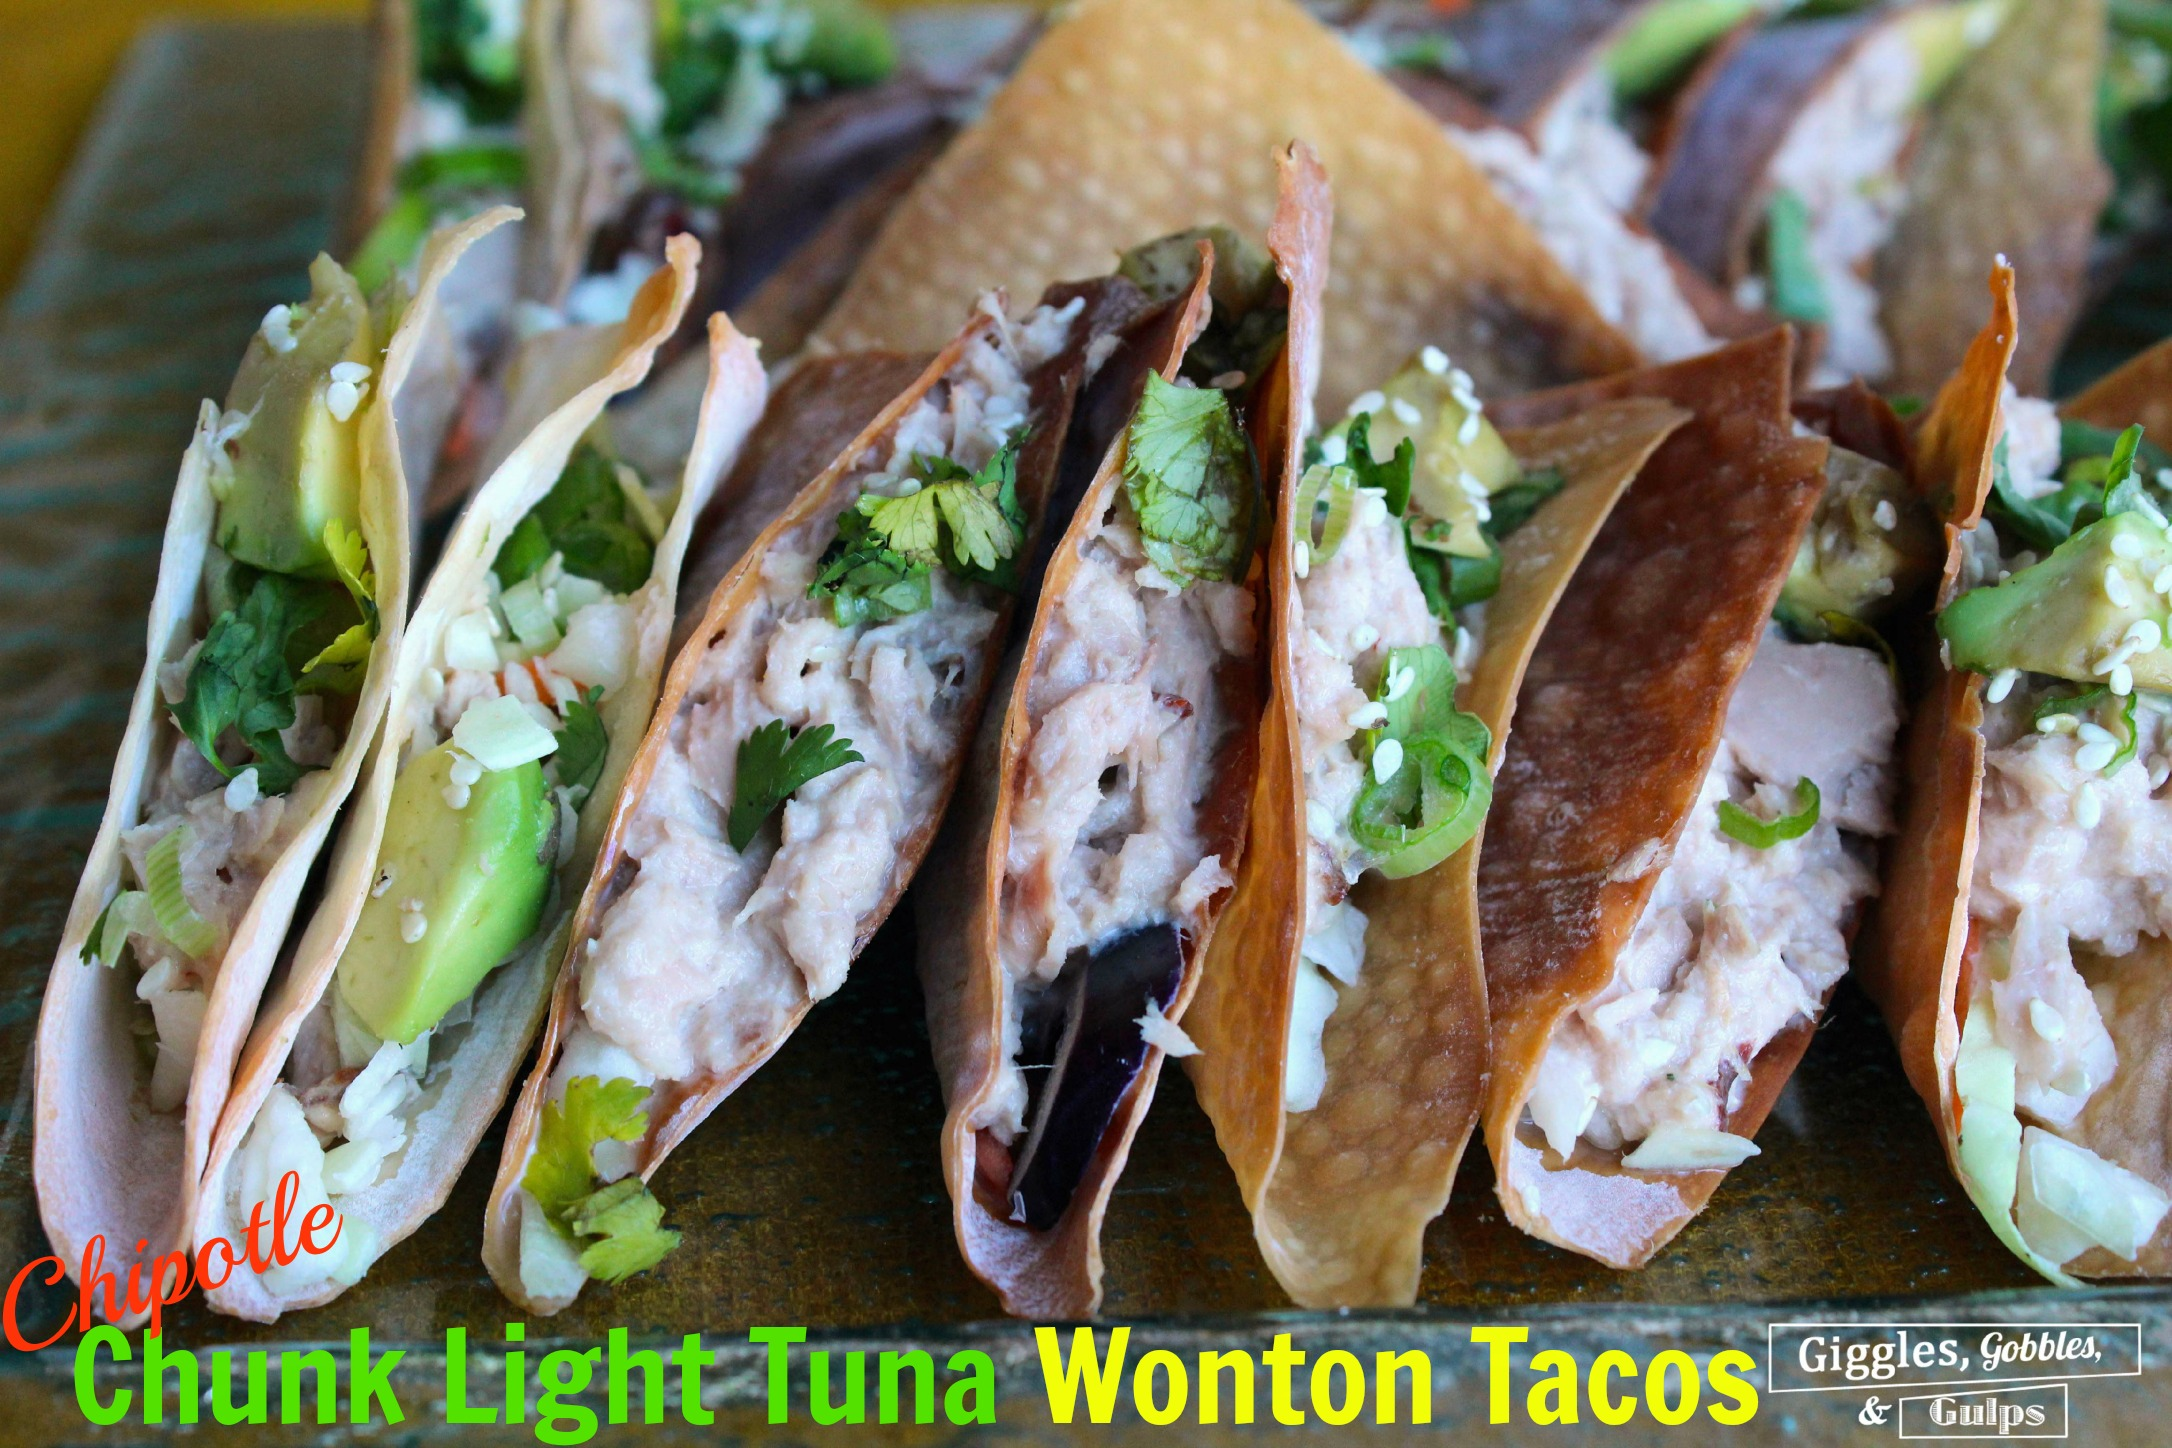 Chunk Light Tuna Wonton Tacos